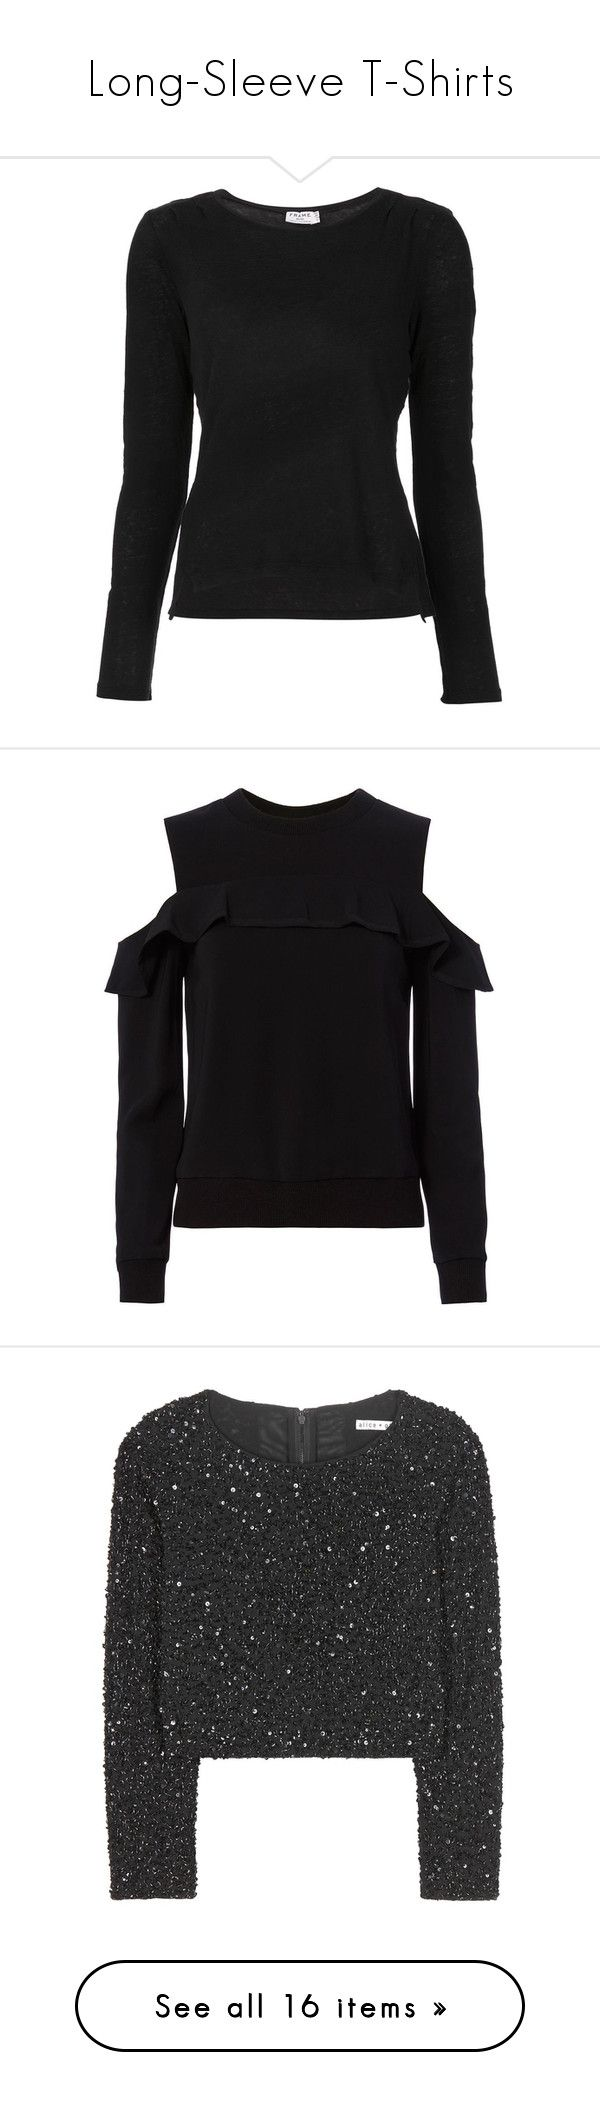 """""""Long-Sleeve T-Shirts"""" by random11-1 ❤ liked on Polyvore featuring tops, t-shirts, long sleeves, sweaters, clothing /, kirna zabete, longsleeve t shirts, frame t shirt, longsleeve tee and linen t shirt"""